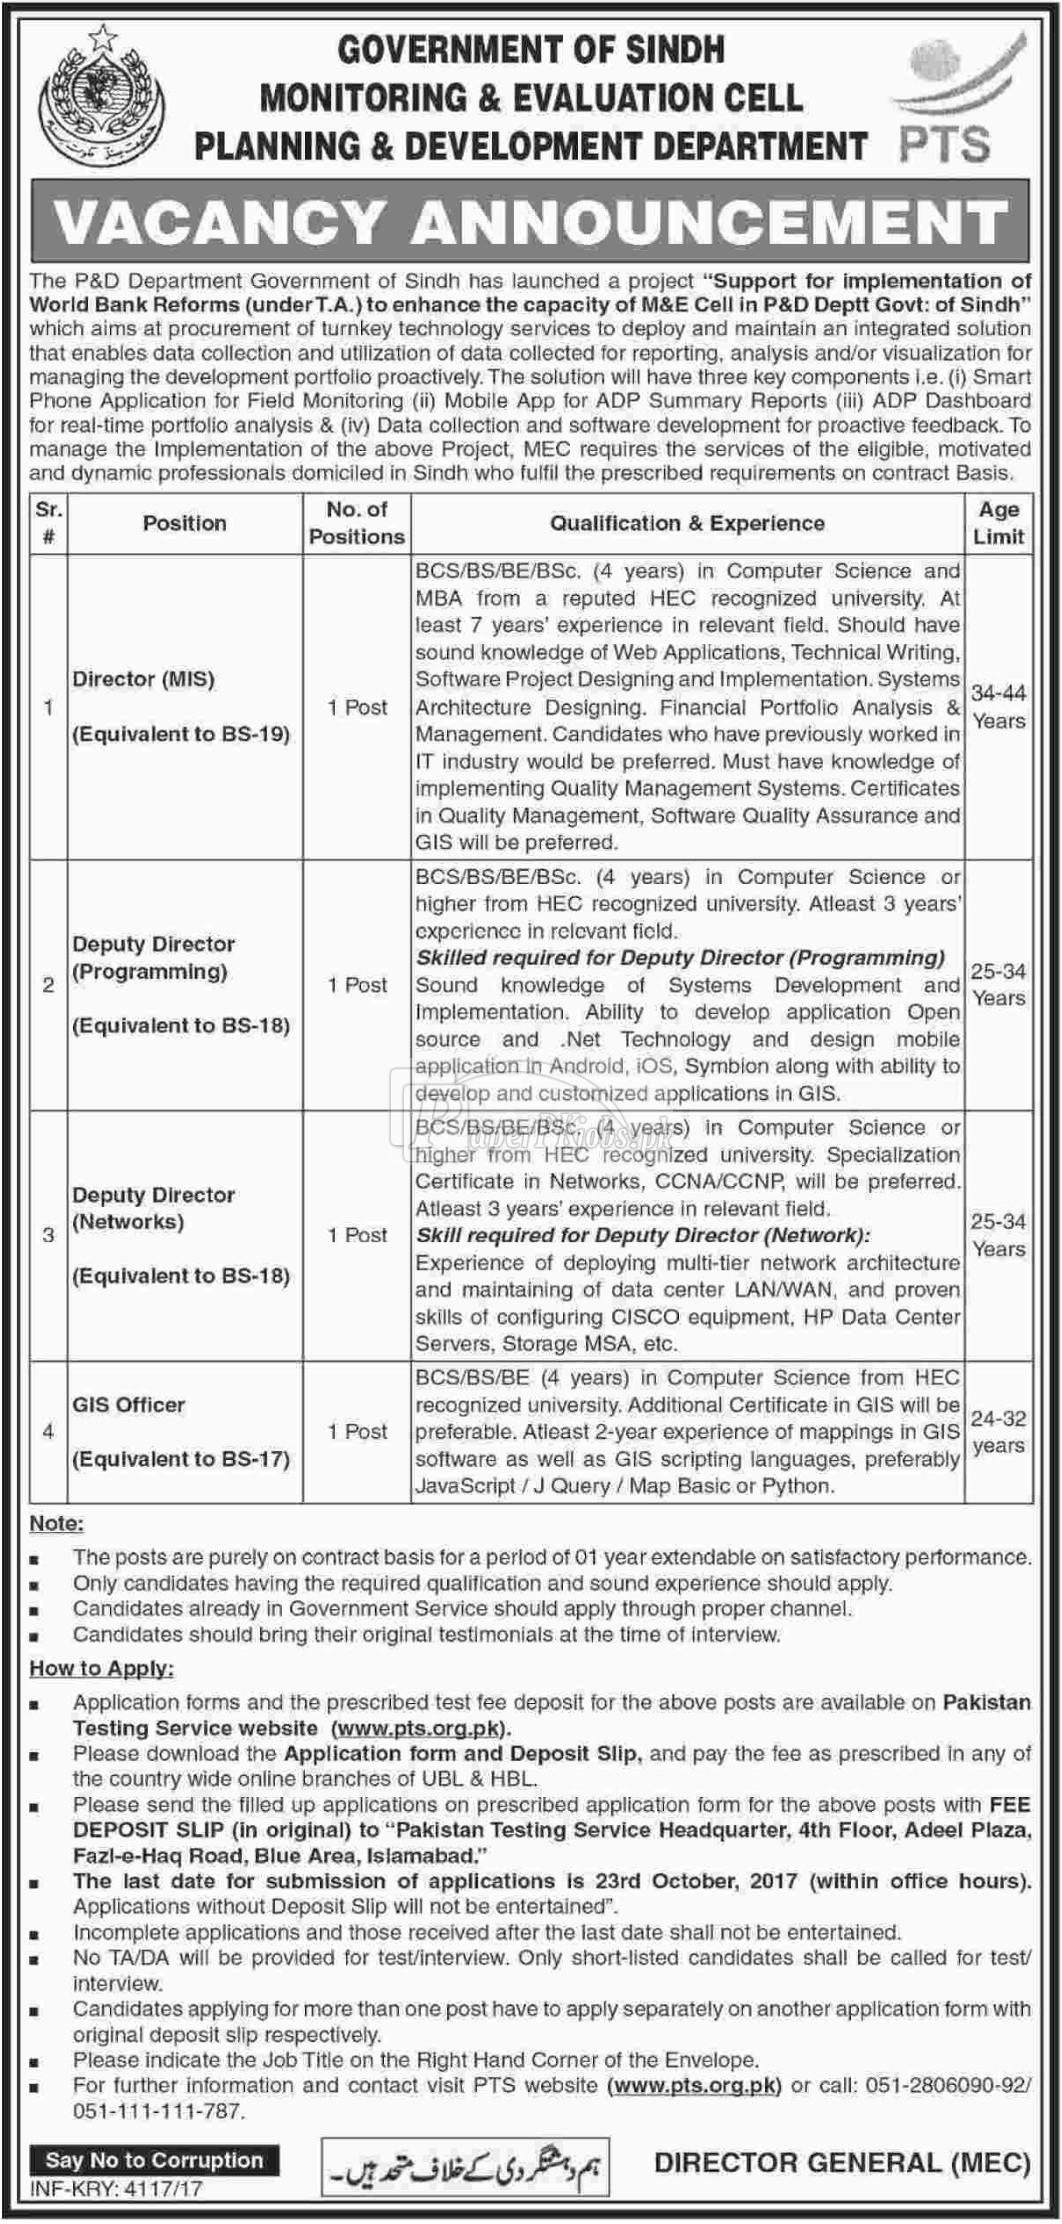 Planning & Development Department Government of Sindh PTS Jobs 2017